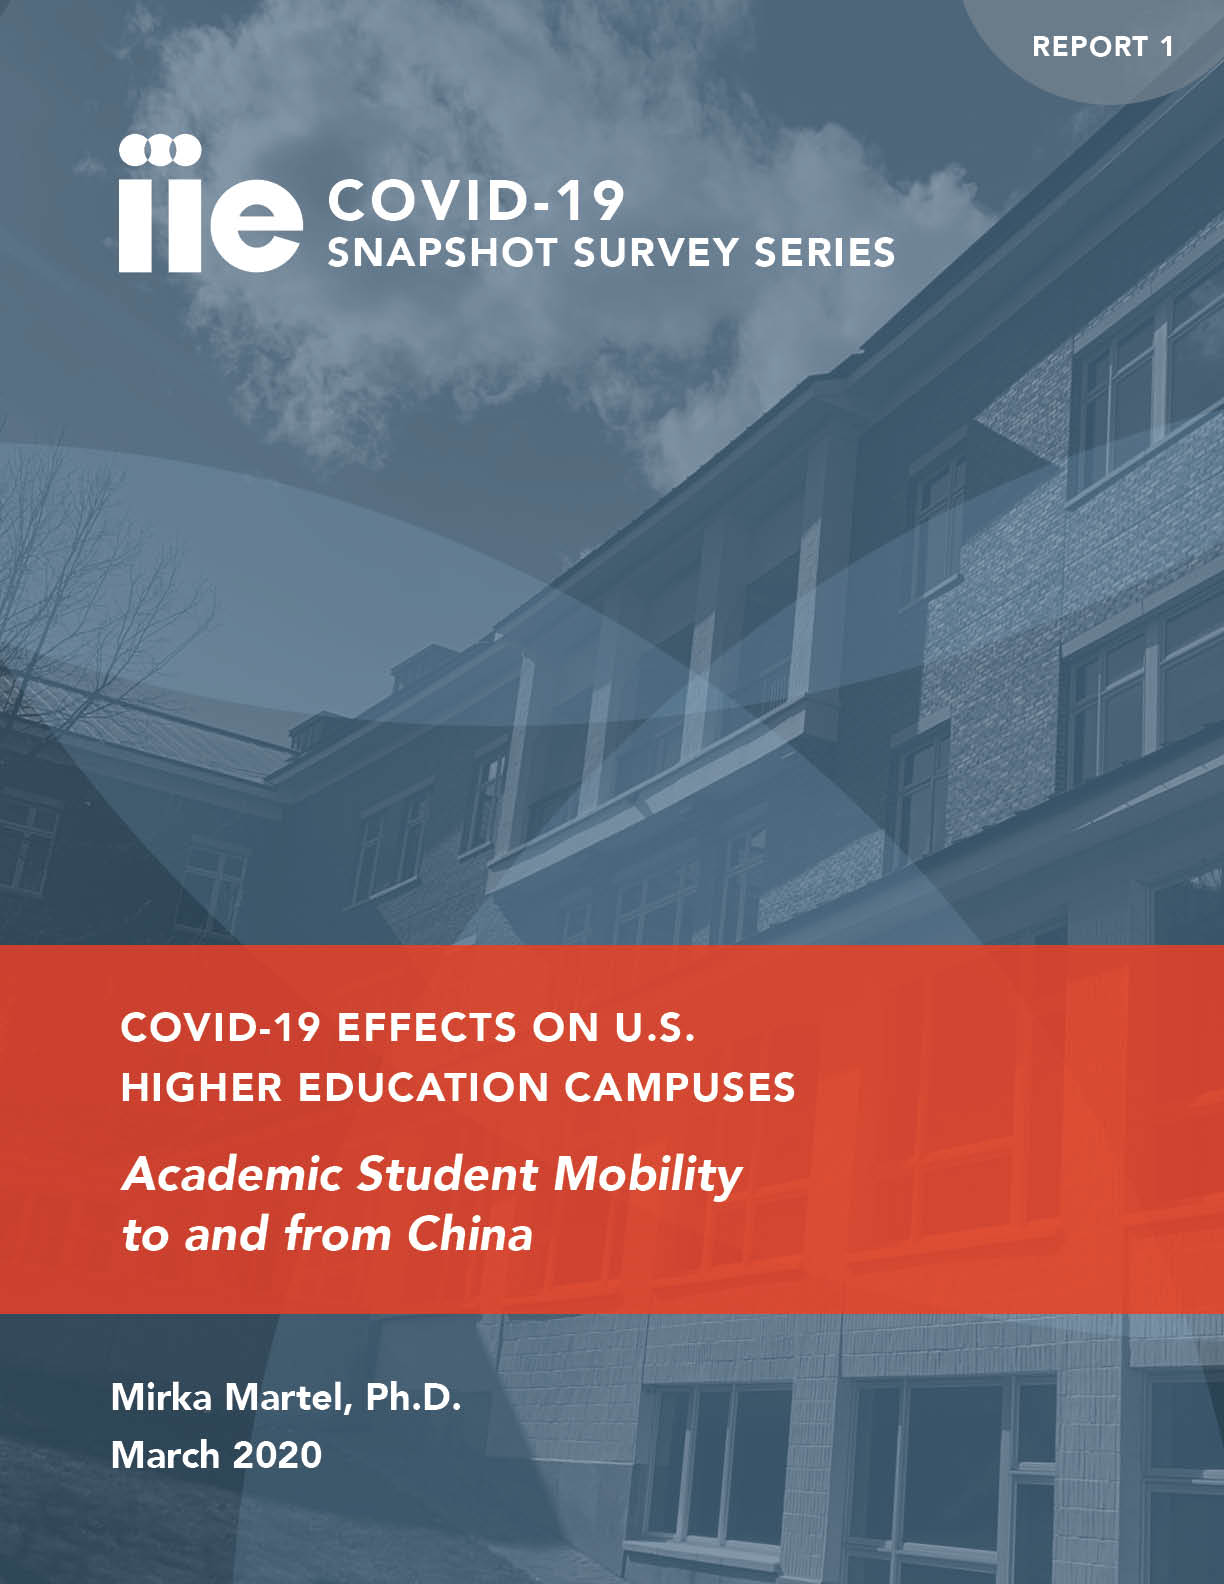 Cover of COVID-19 Snapshot Survey Series Report 1